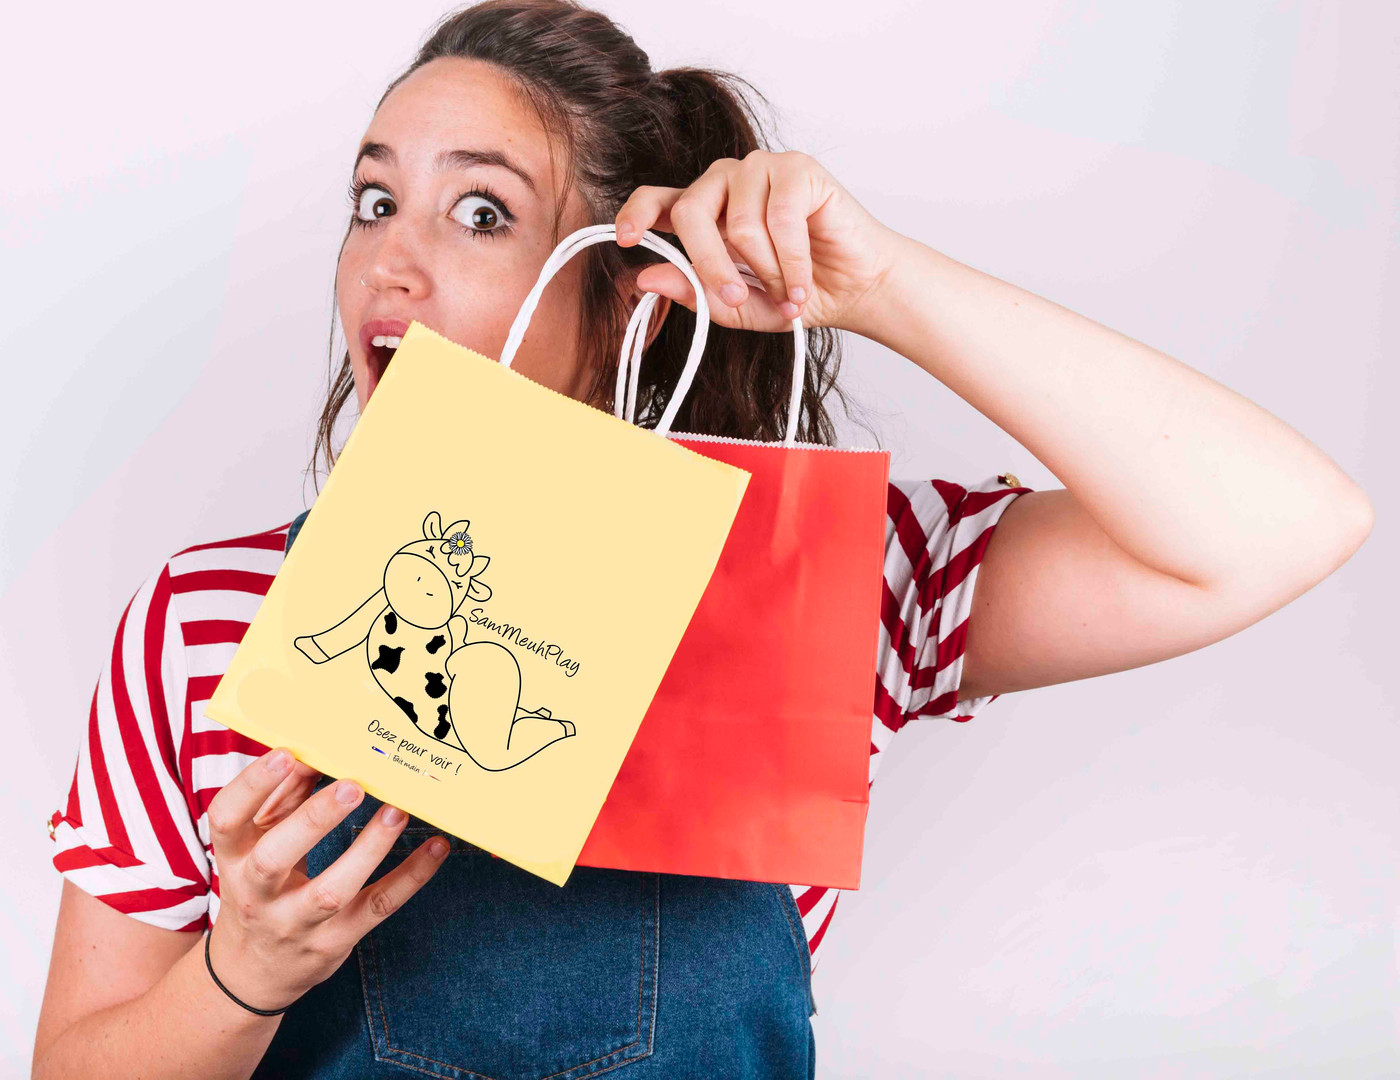 Woman with shoppping bag.jpg